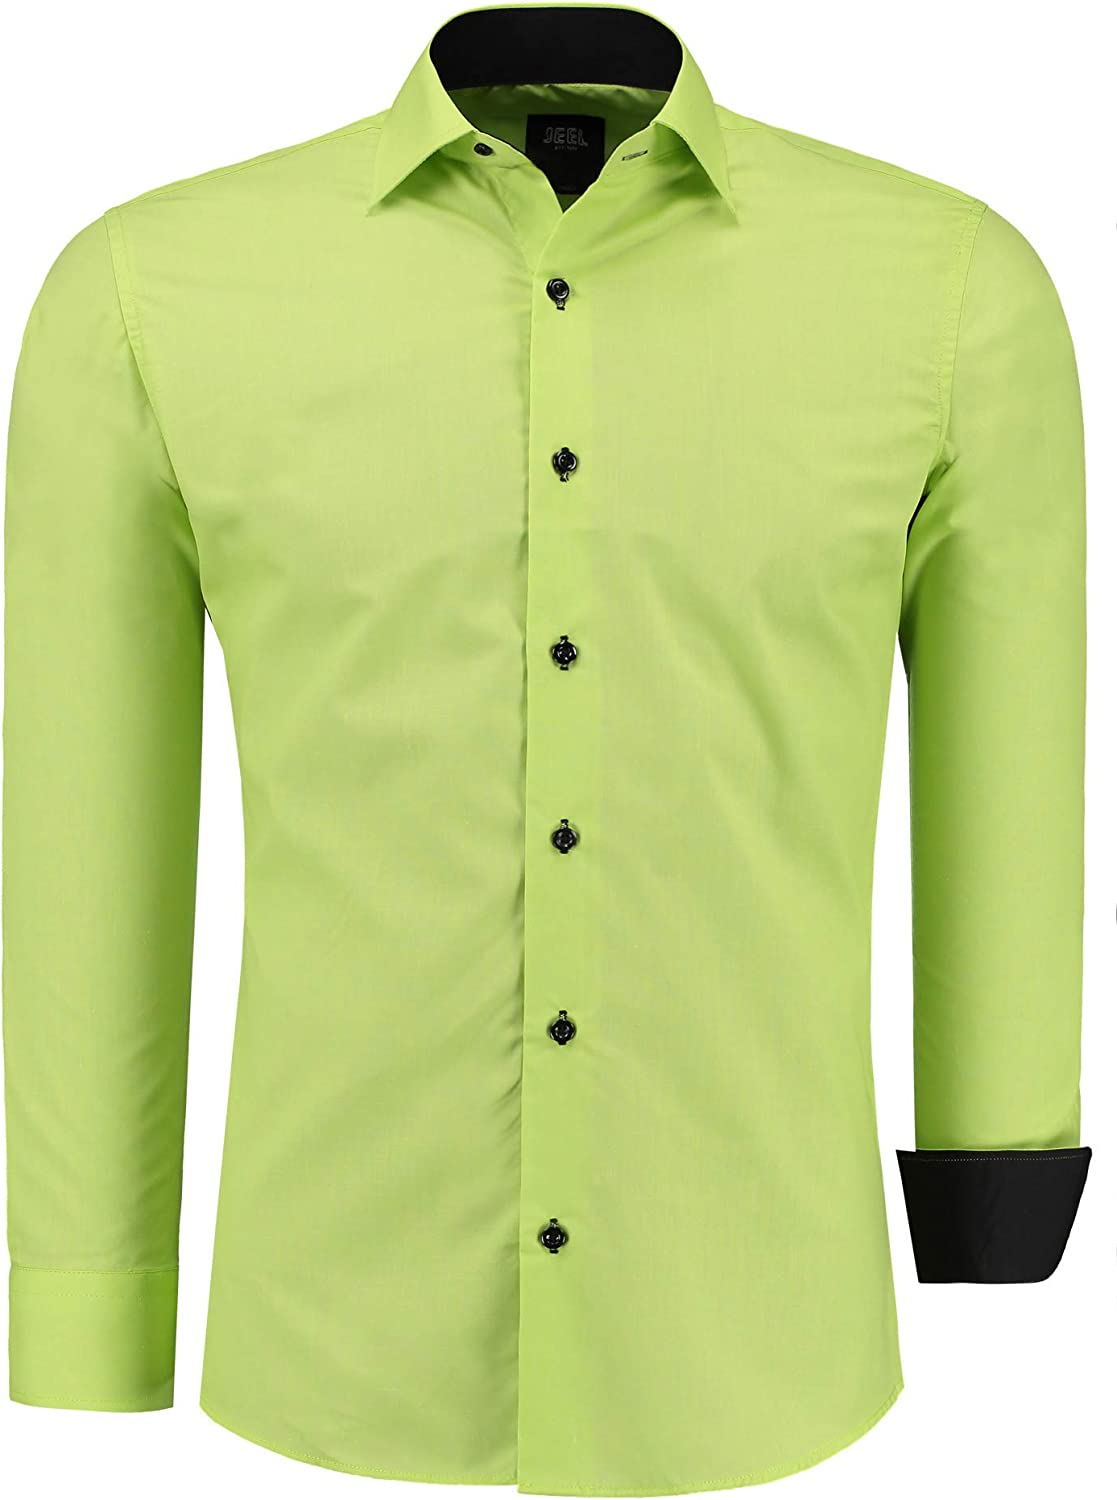 6XL Casual Shirt Slim-Fit Size S Jeel Men Long-Sleve for Business Suit Wedding Casual